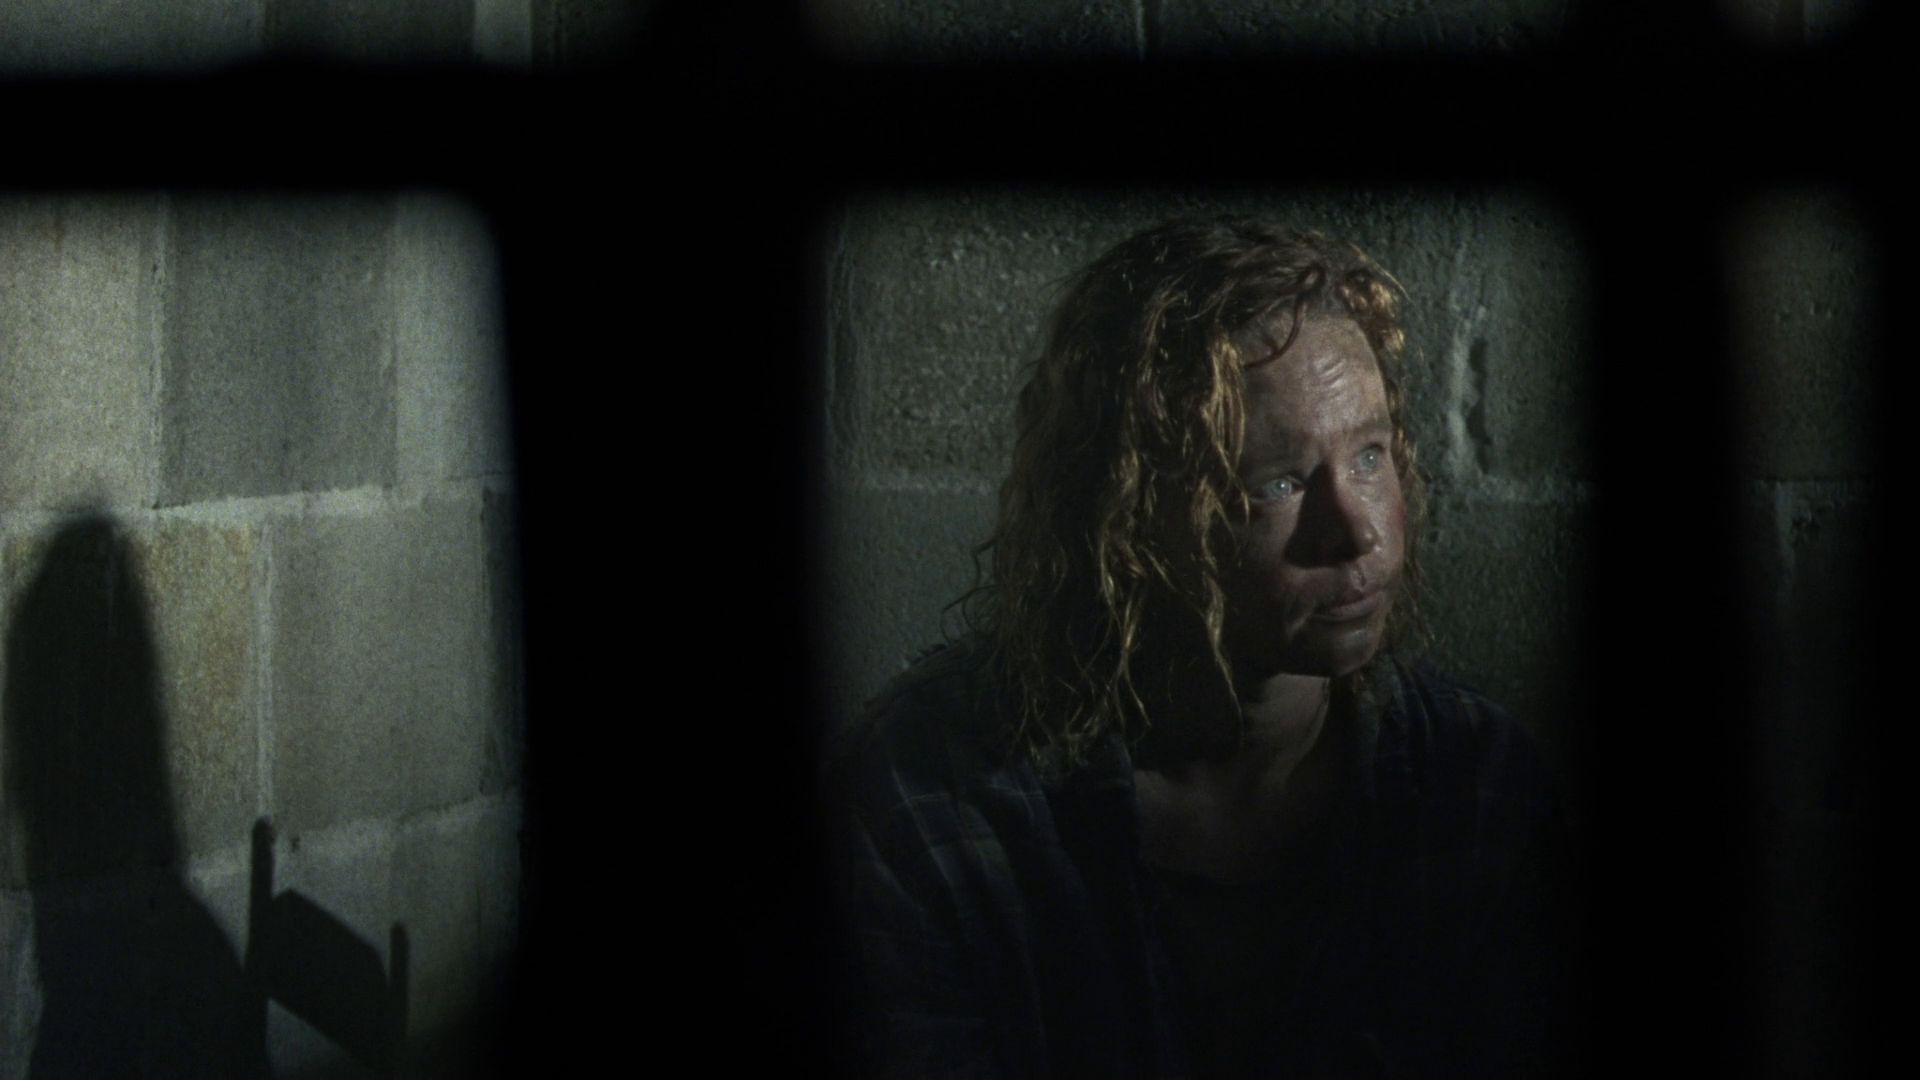 Mary in Stalker